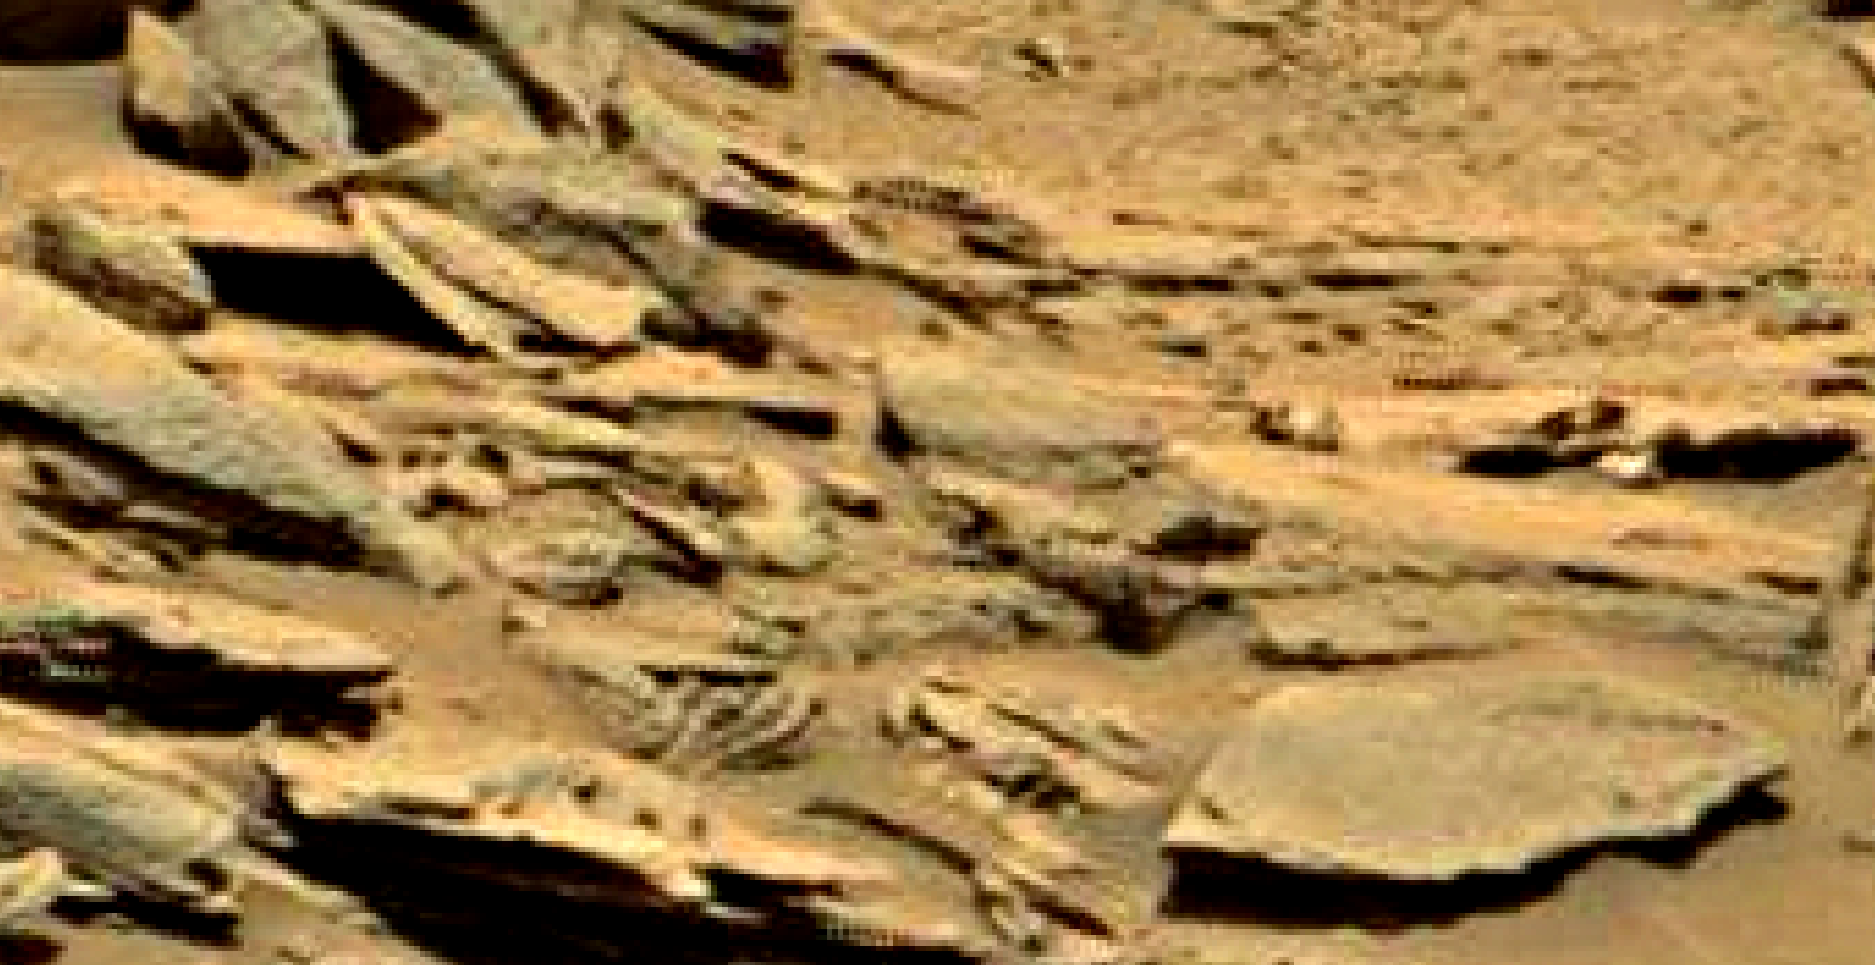 mars sol 1353 anomaly-artifacts 28c was life on mars